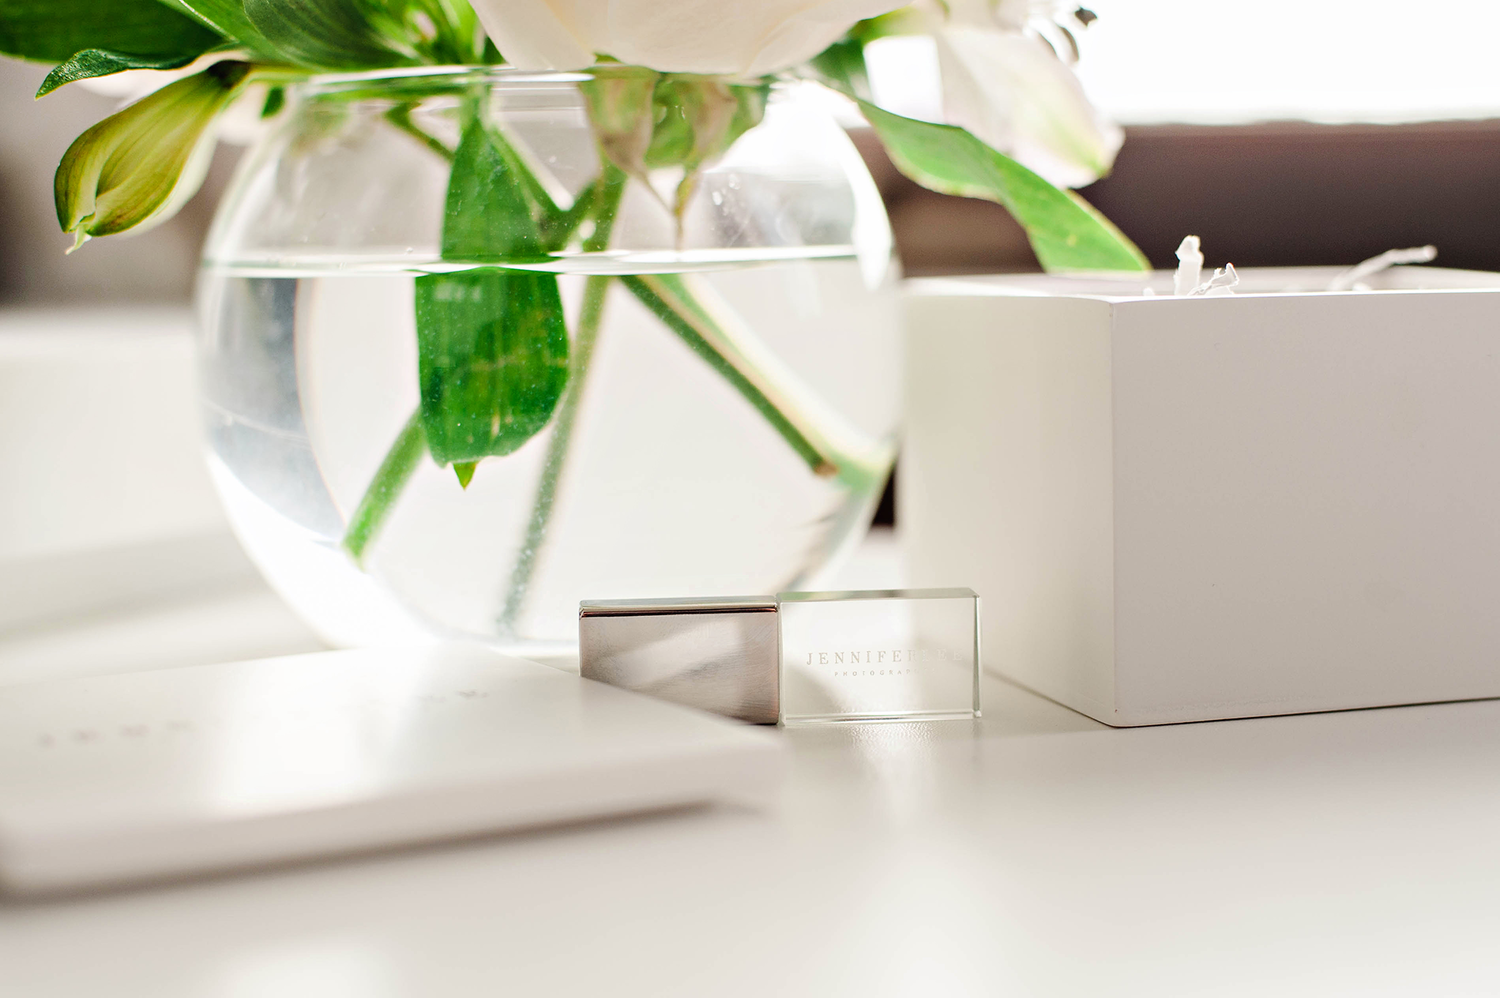 Crystal USB Drive, Photography Packaging